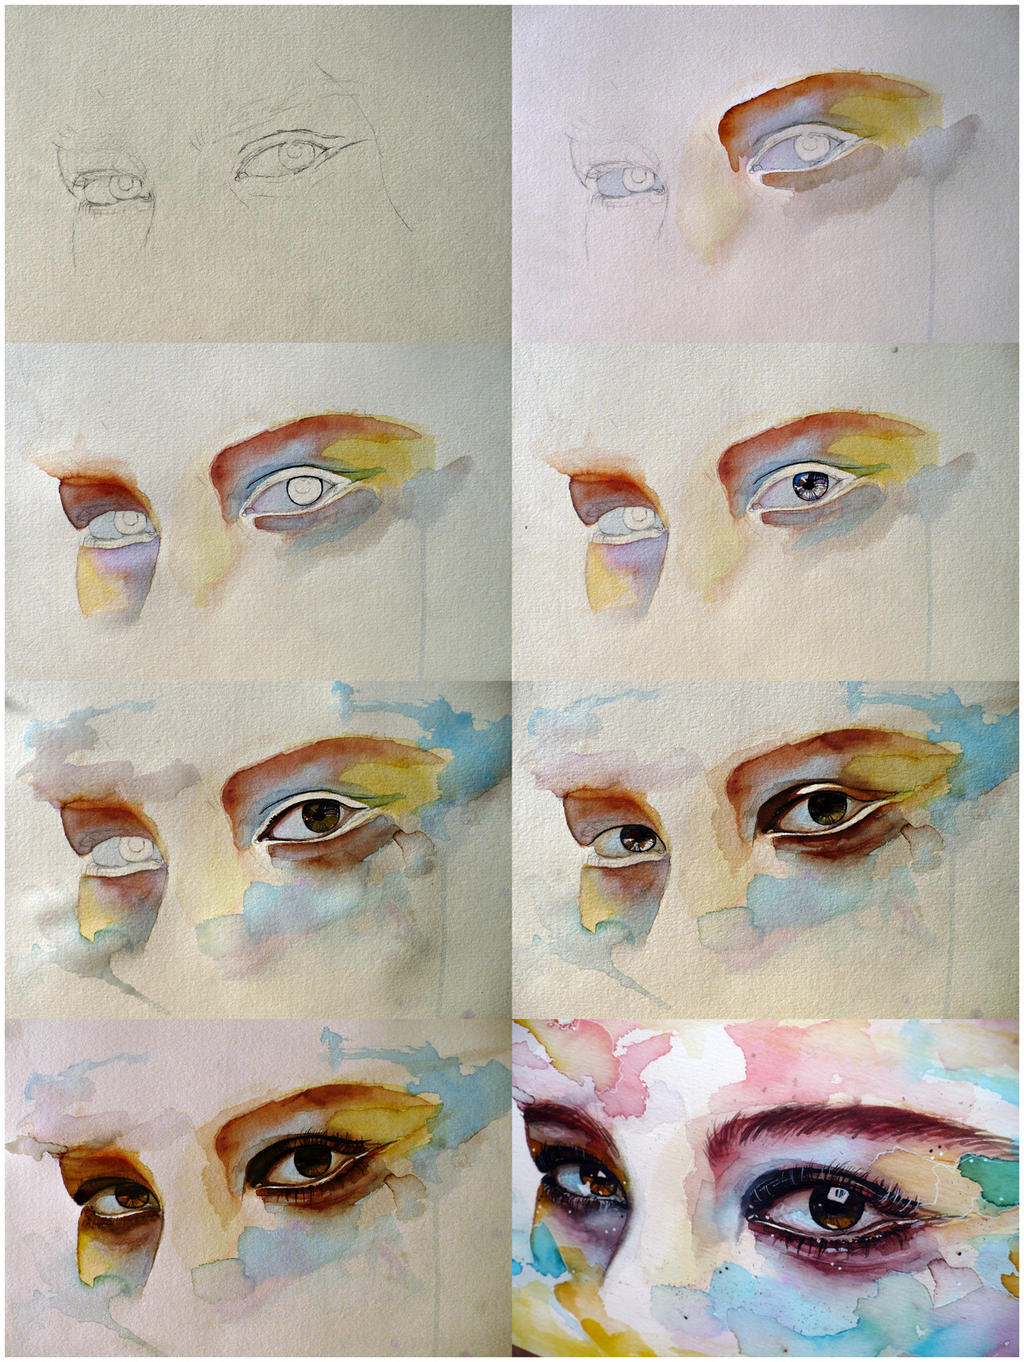 watercolor eye study step by step by jane beata on deviantart